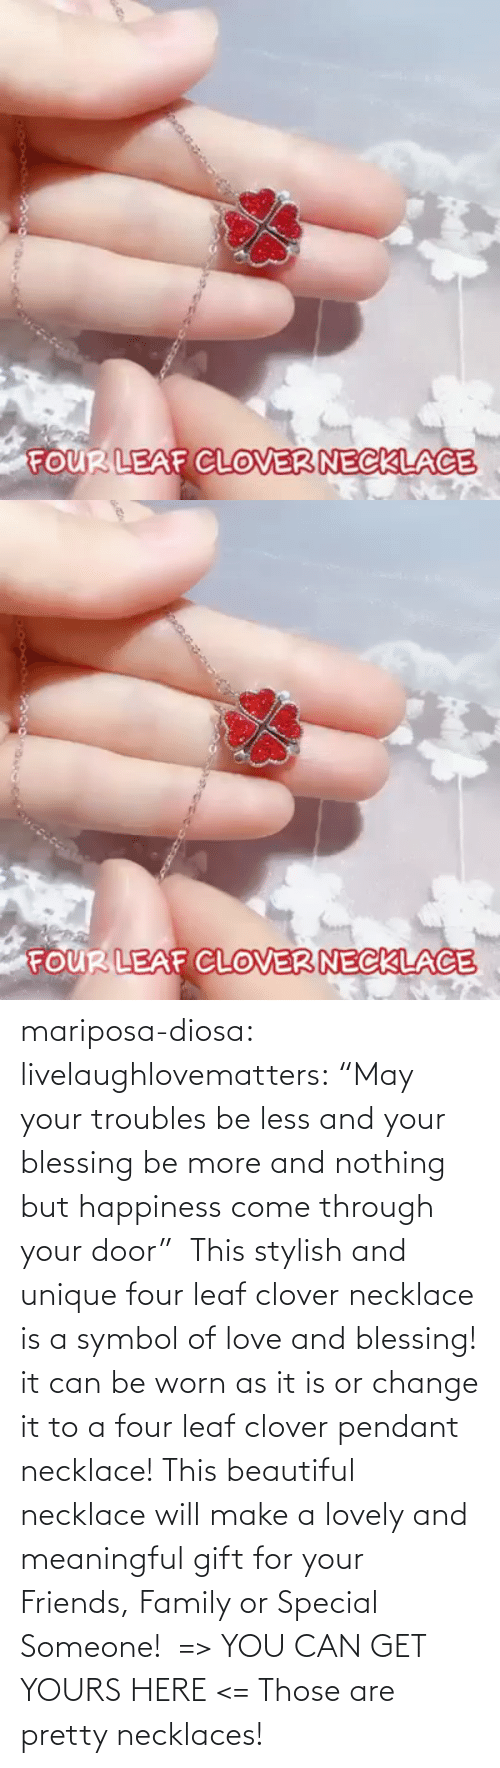 "Image: mariposa-diosa: livelaughlovematters:  ""May your troubles be less and your blessing be more and nothing but happiness come through your door""  This stylish and unique four leaf clover necklace is a symbol of love and blessing! it can be worn as it is or change it to a four leaf clover pendant necklace! This beautiful necklace will make a lovely and meaningful gift for your Friends, Family or Special Someone!  => YOU CAN GET YOURS HERE <=    Those are pretty necklaces!"